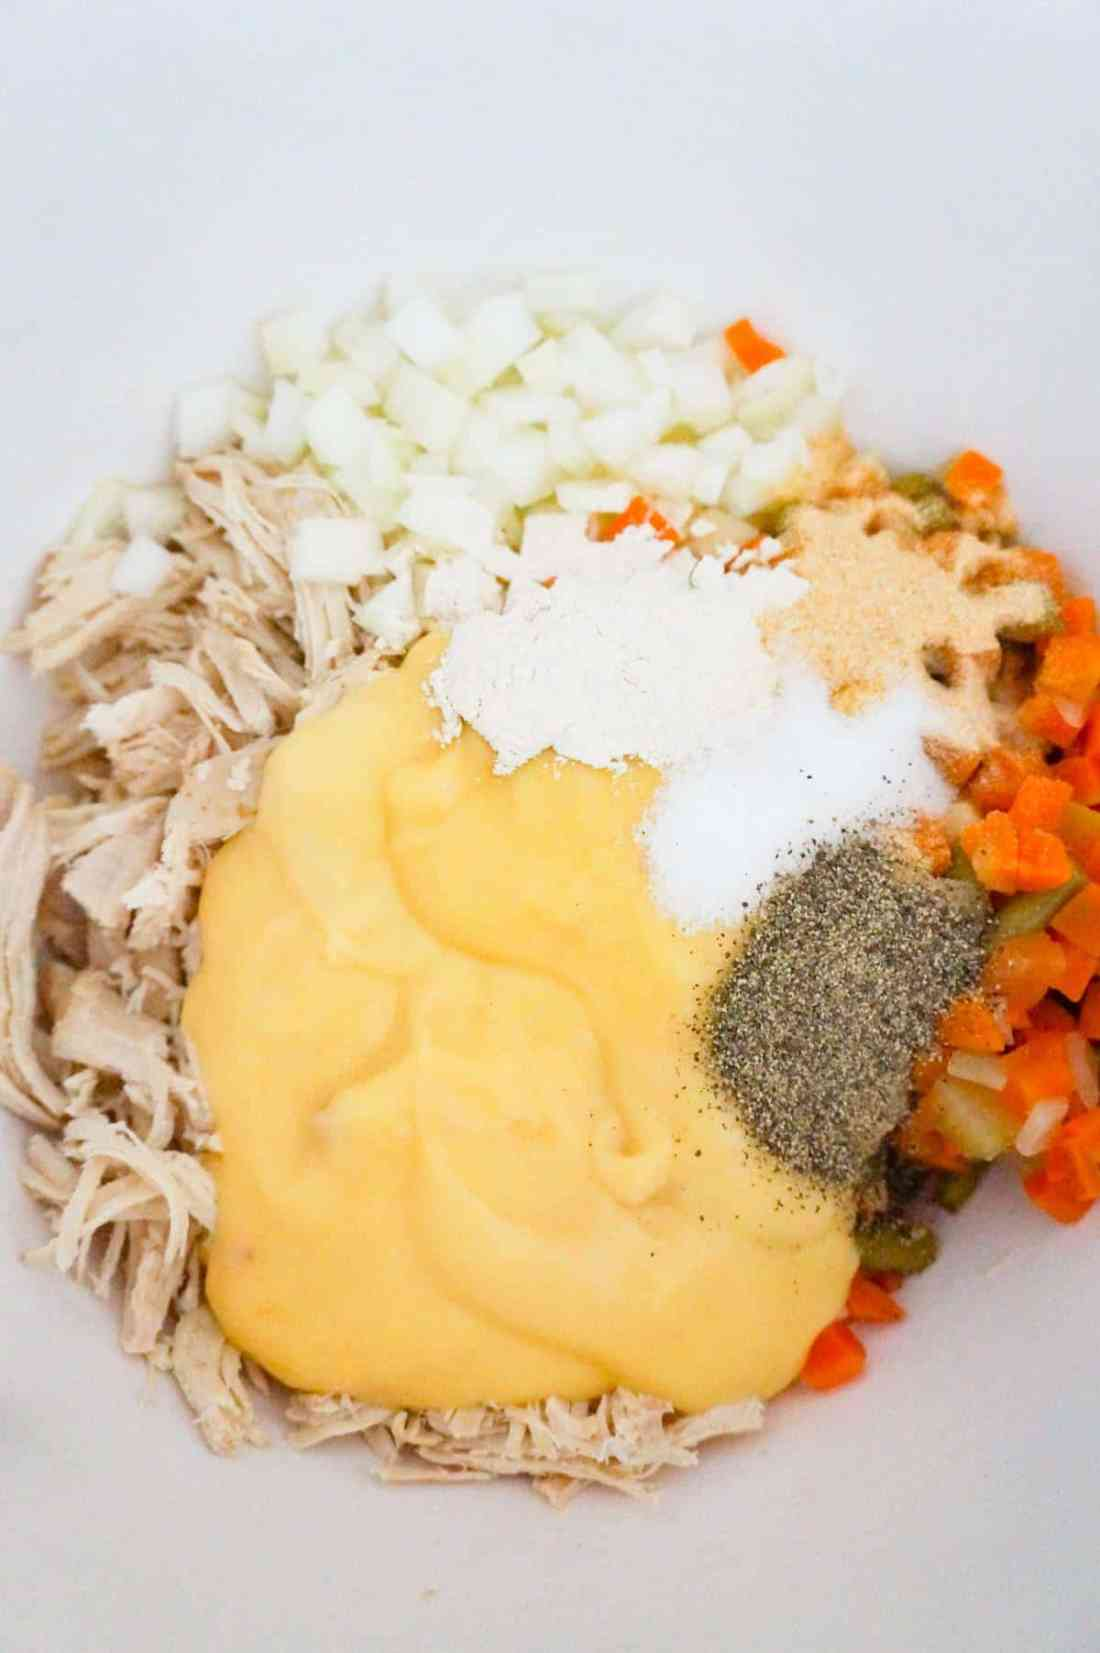 cream of chicken soup and spices on top of shredded chicken and veggies in a mixing bowl